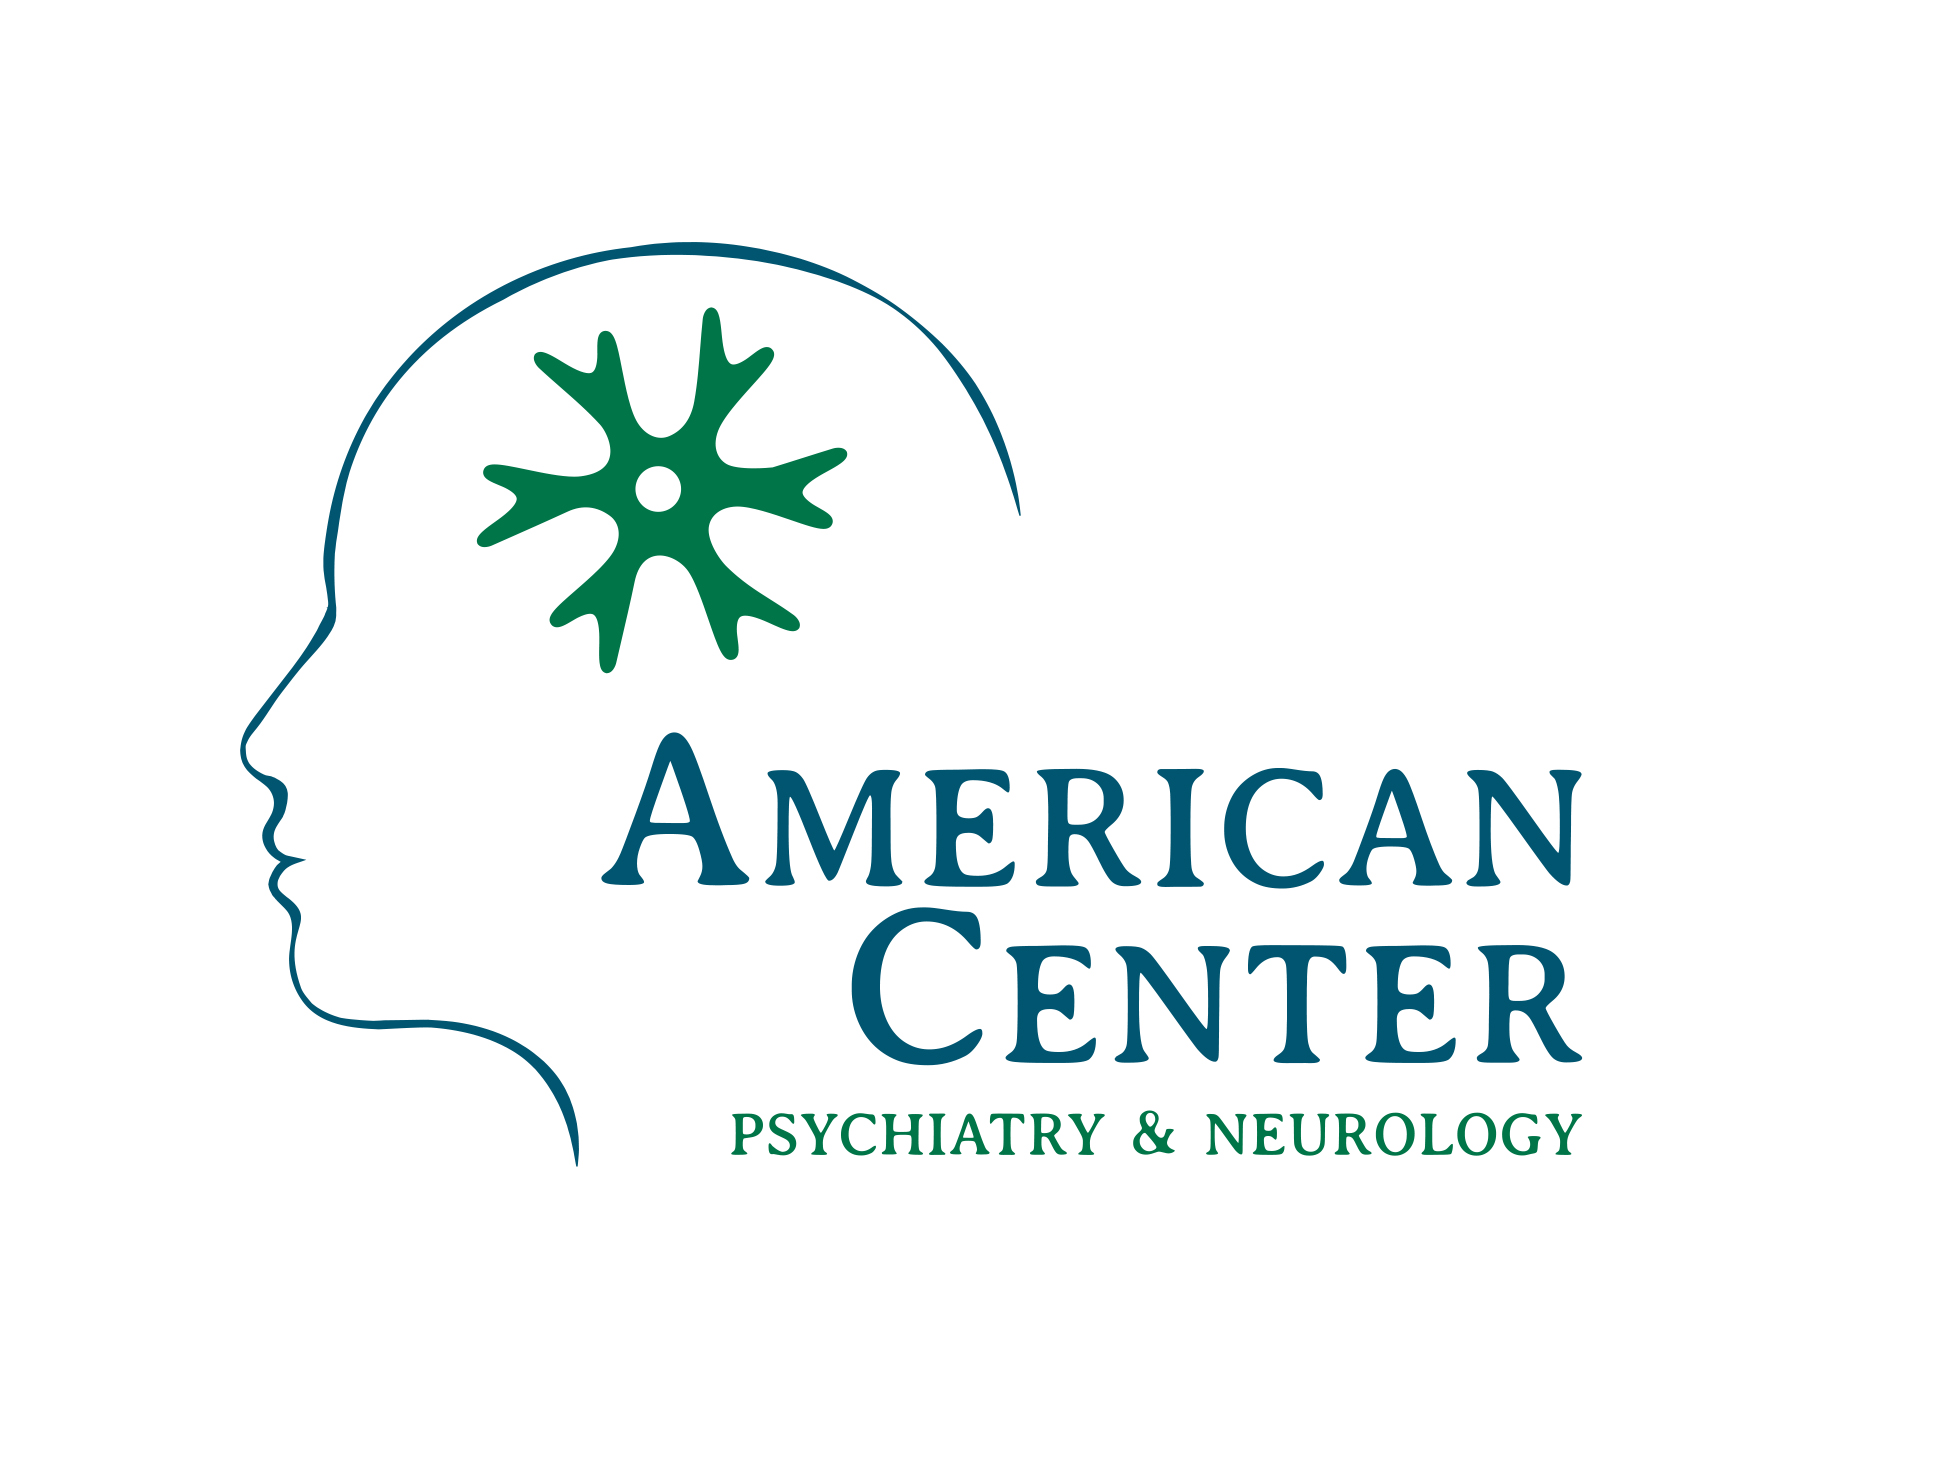 American Center for Psychiatry and Neurology - Abu Dhabi